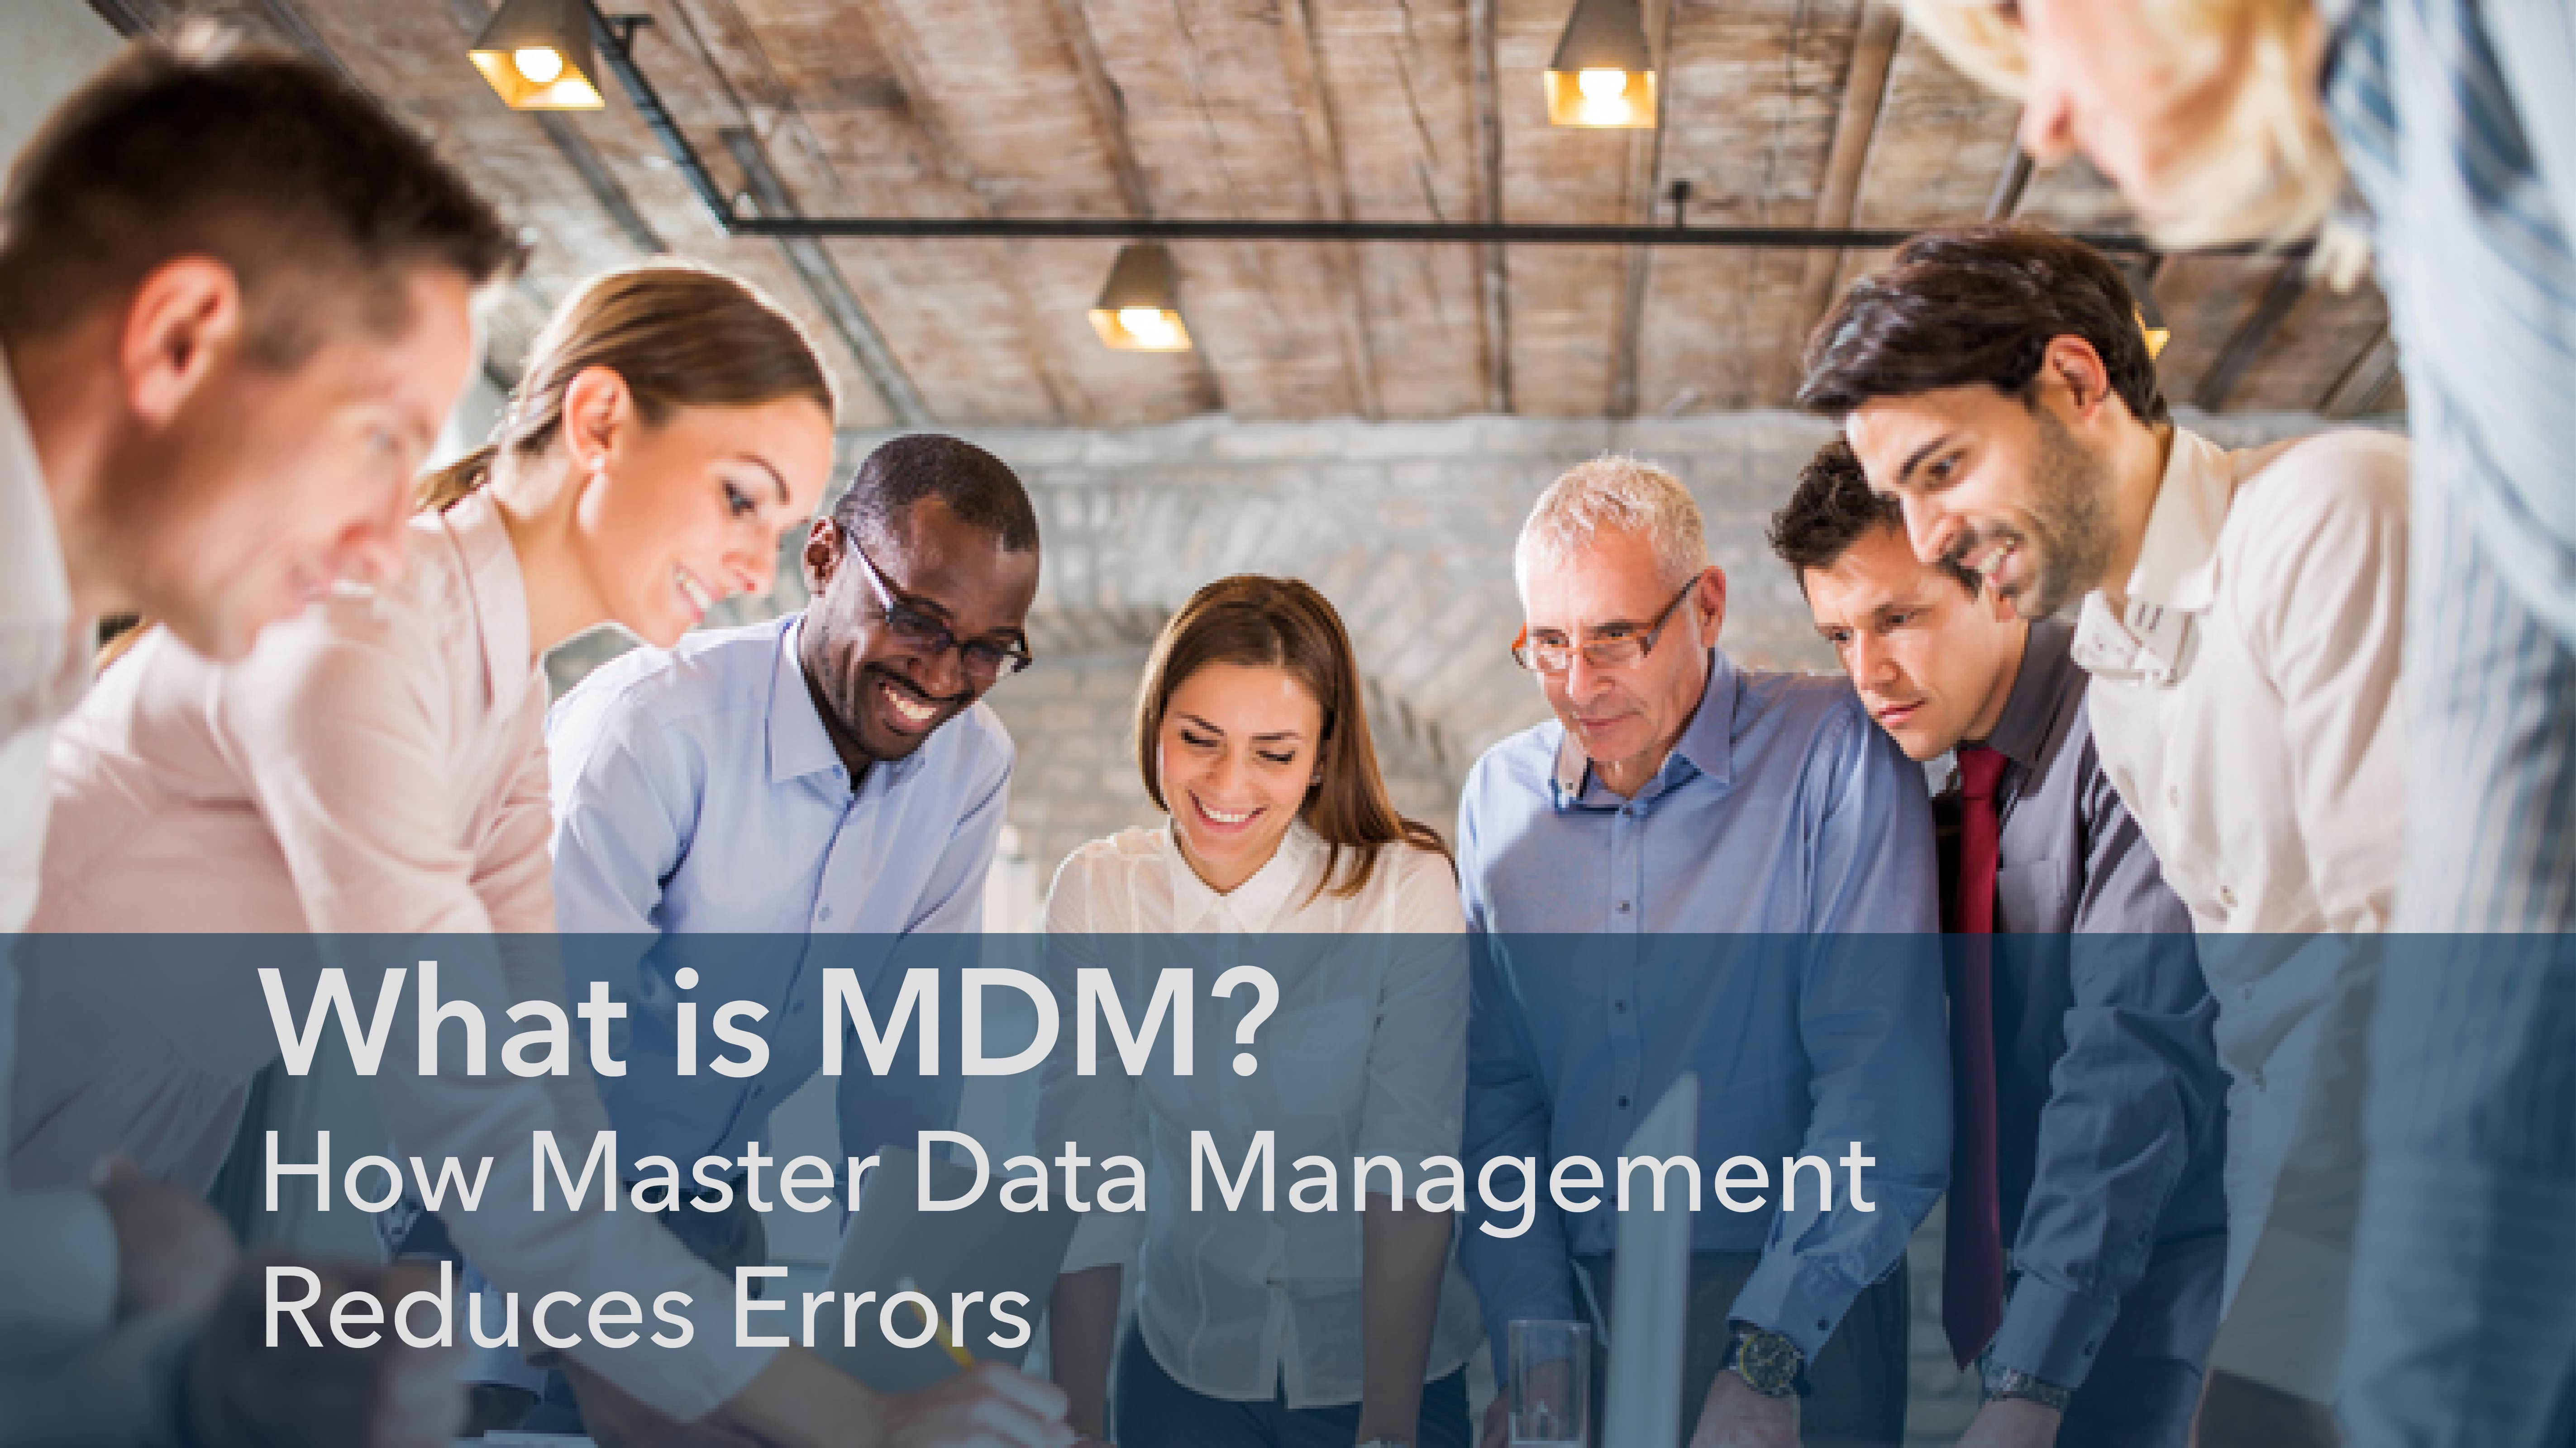 What is MDM? How Master Data Management reduces errors